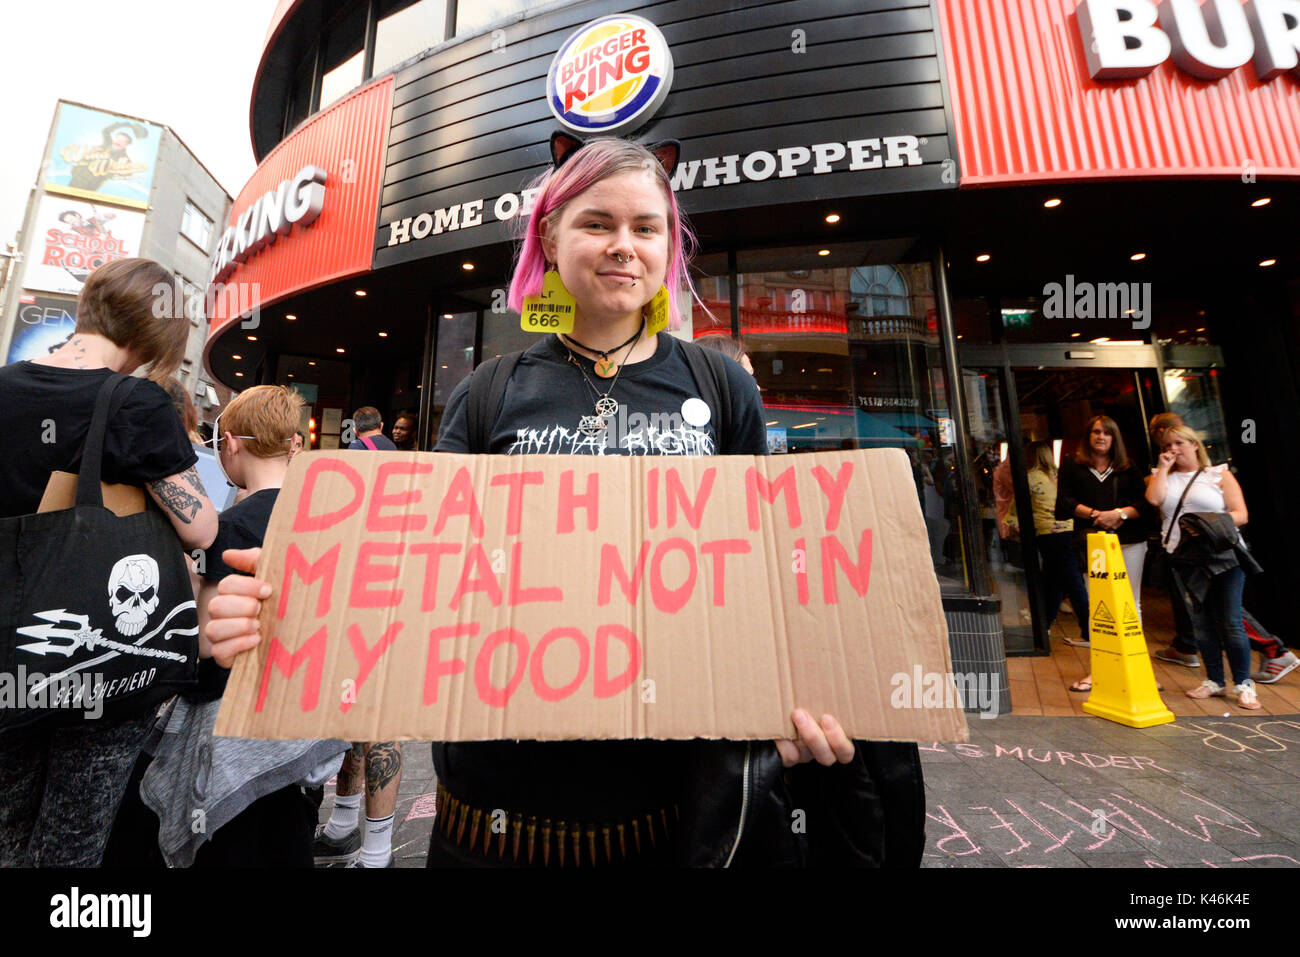 Animal rights activists protesting outside Burger King in Leicester Square, London. Reference to death metal music. Female activist - Stock Image